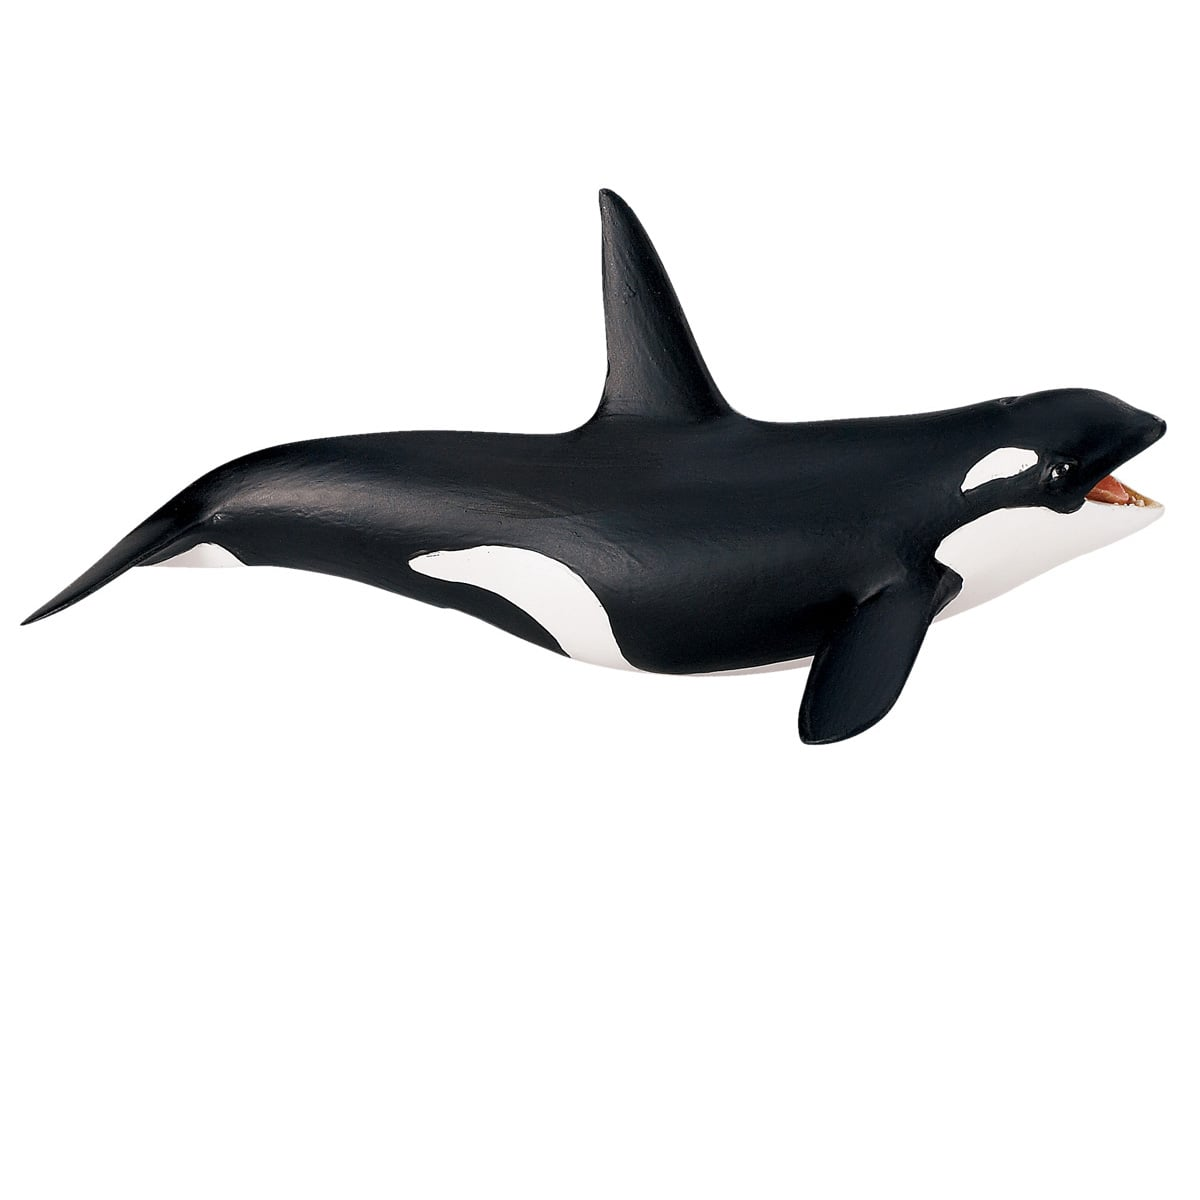 Action Figures Animal Pack Baby Killer Whale Calf Mini Figure Play Toy Kids Ocean Sea Creature Animals & Dinosaurs